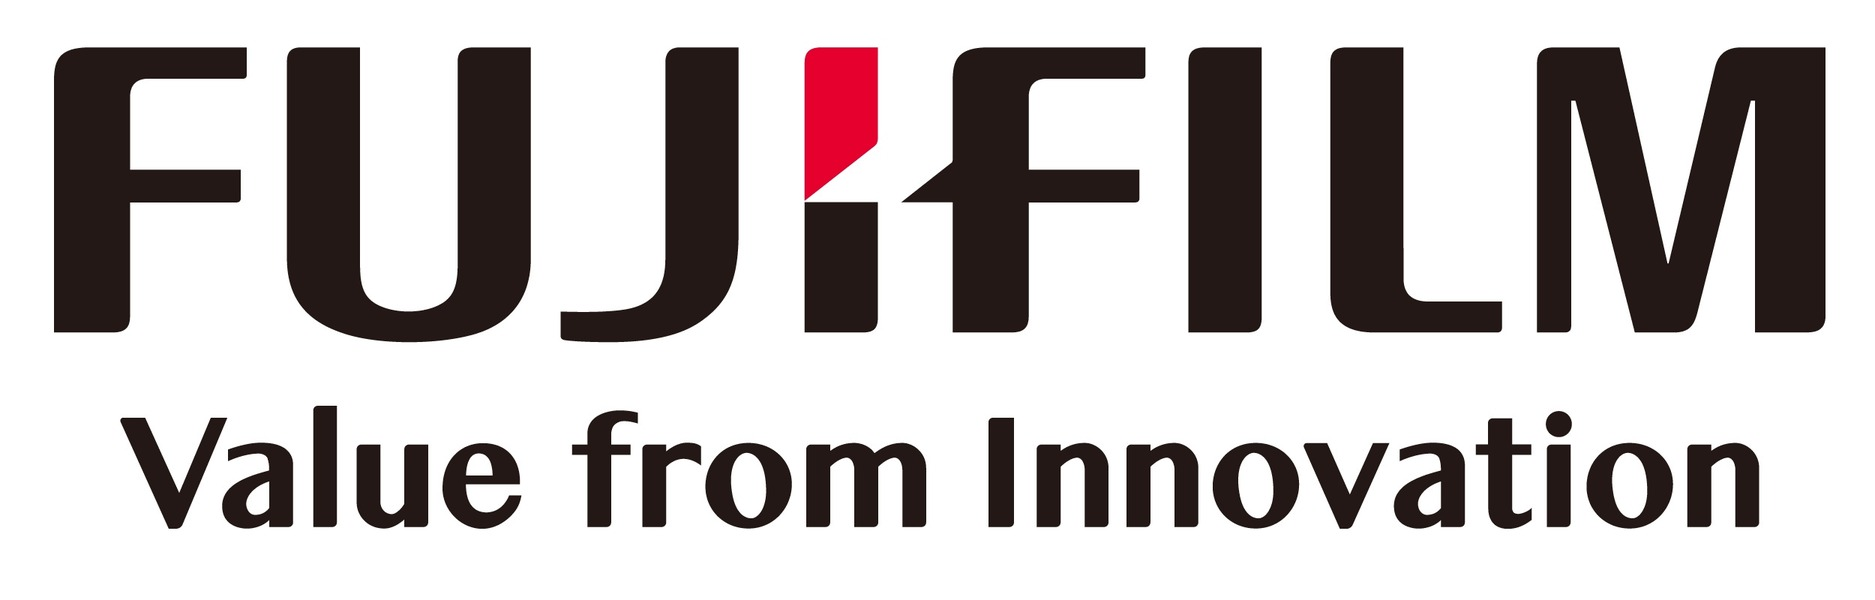 Hitachi Health Americas, a supplier in the OpenMarkets Community, finalizes merger with Fujifilm